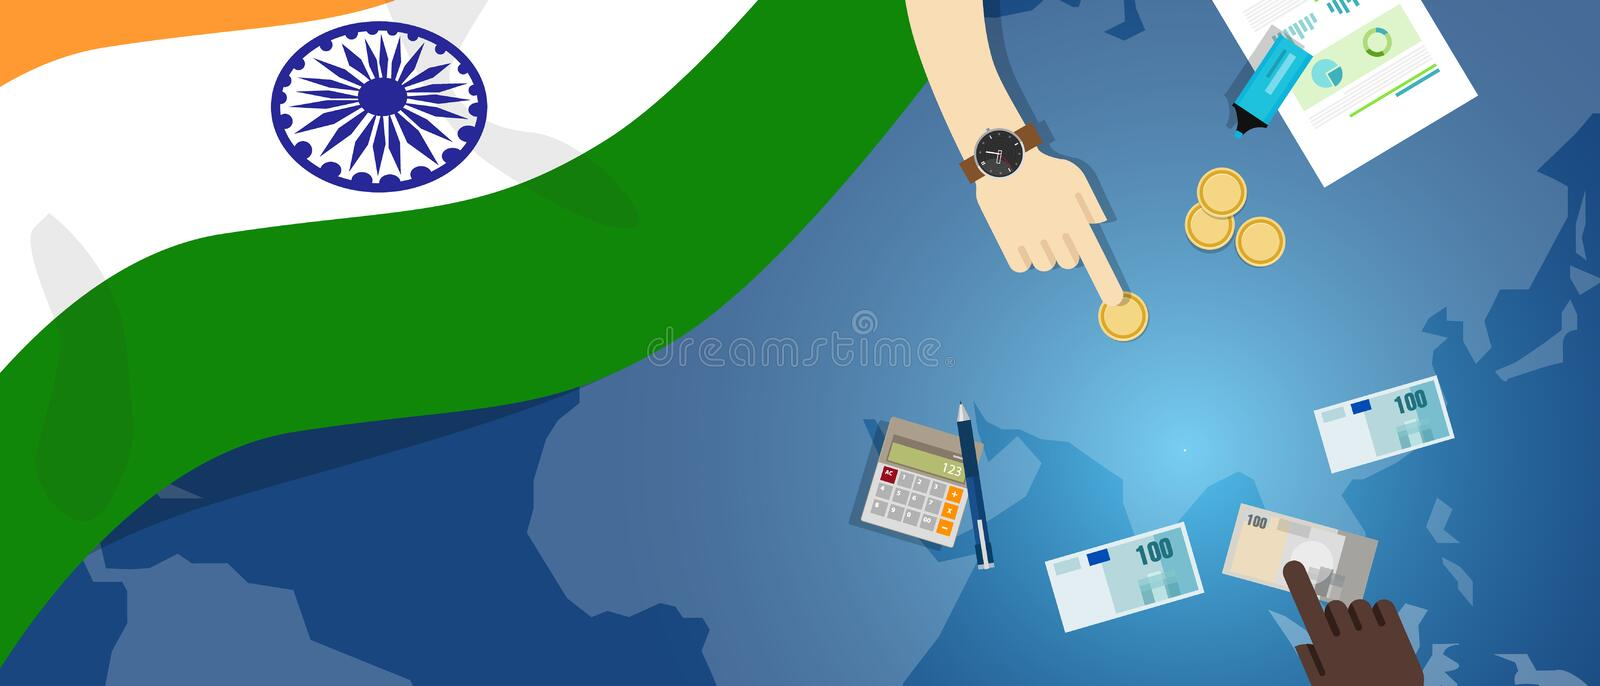 India economy fiscal money trade concept illustration of financial banking budget with flag map and currency. Vector vector illustration